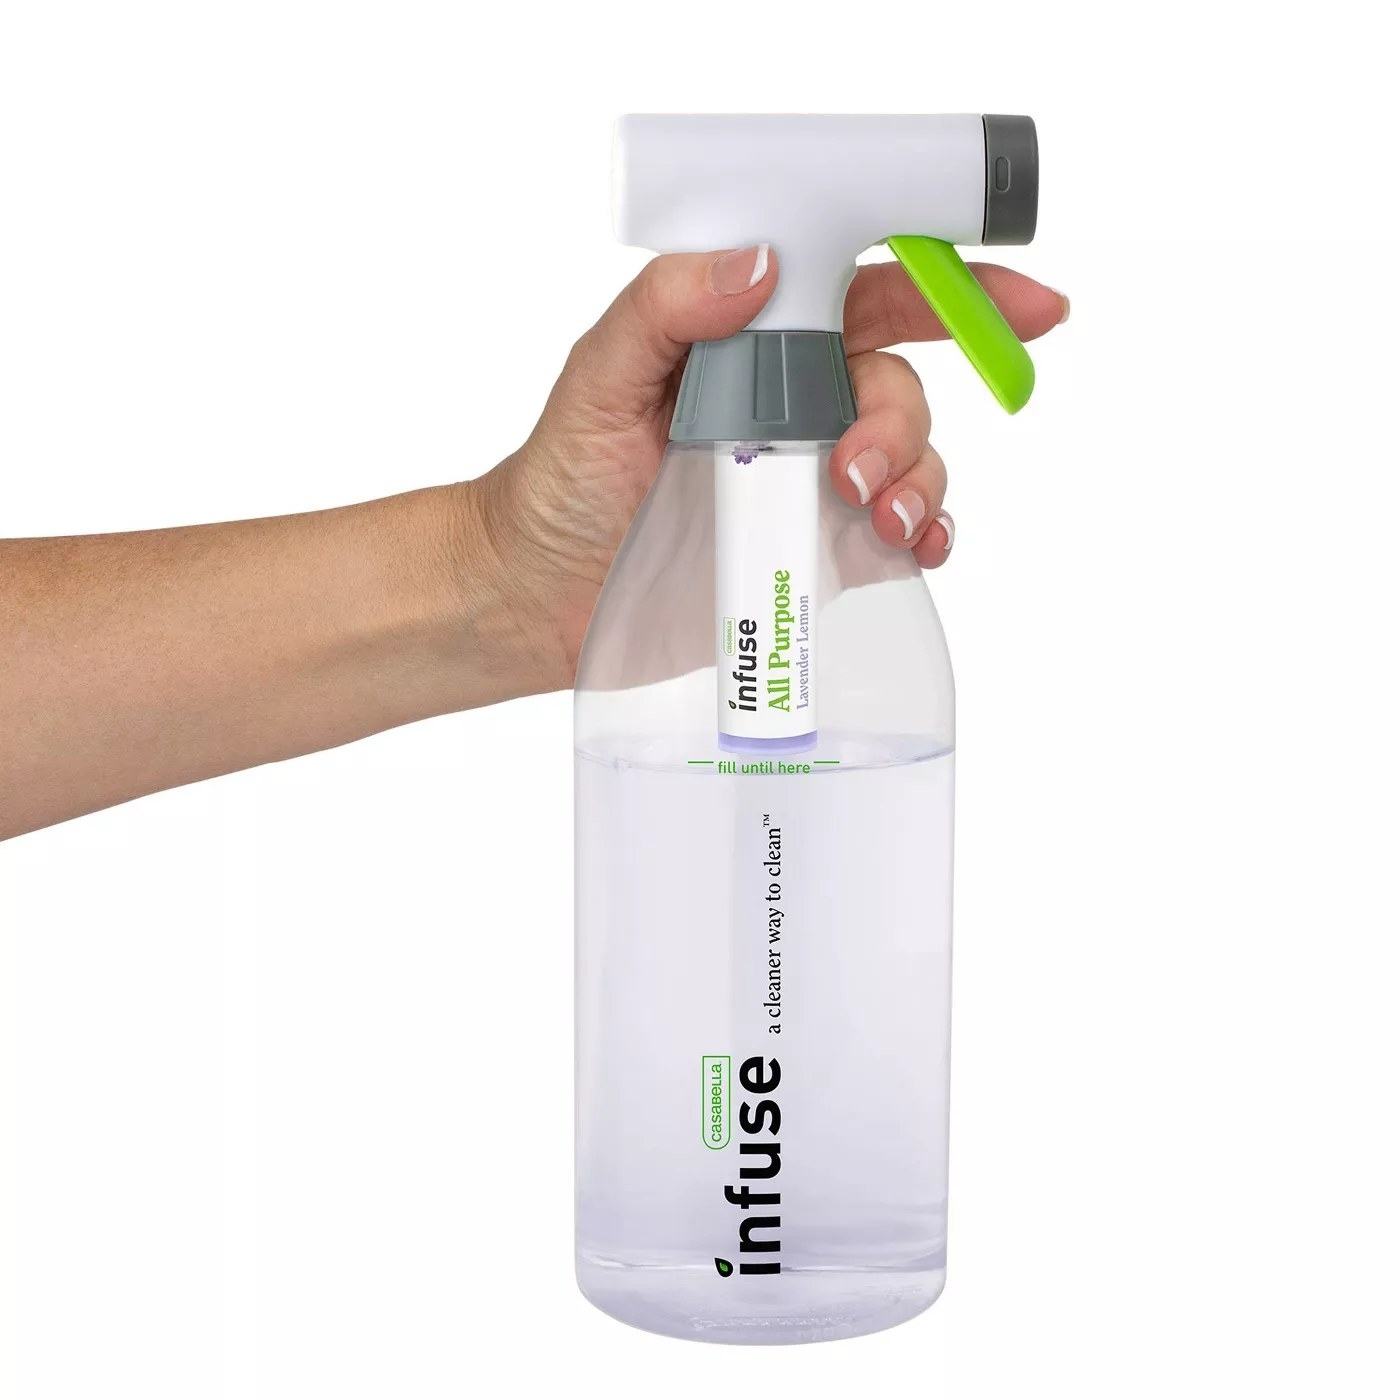 """""""A model holding the trigger on a refillable bottle of Infuse's lavender-scented, all-purpose cleaning spray"""